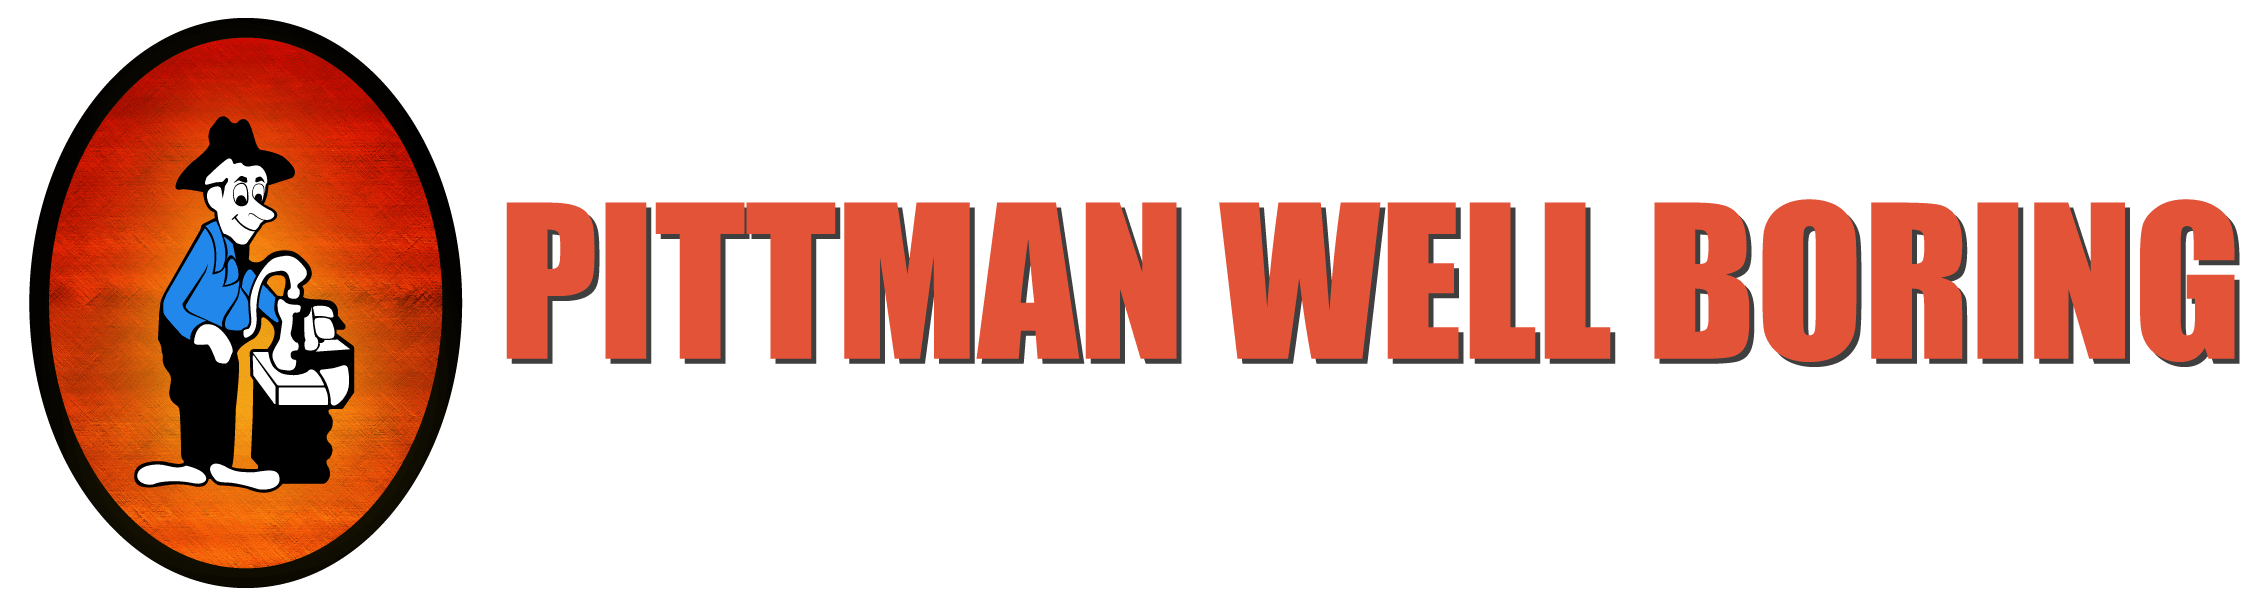 Pittman Well Boring logo